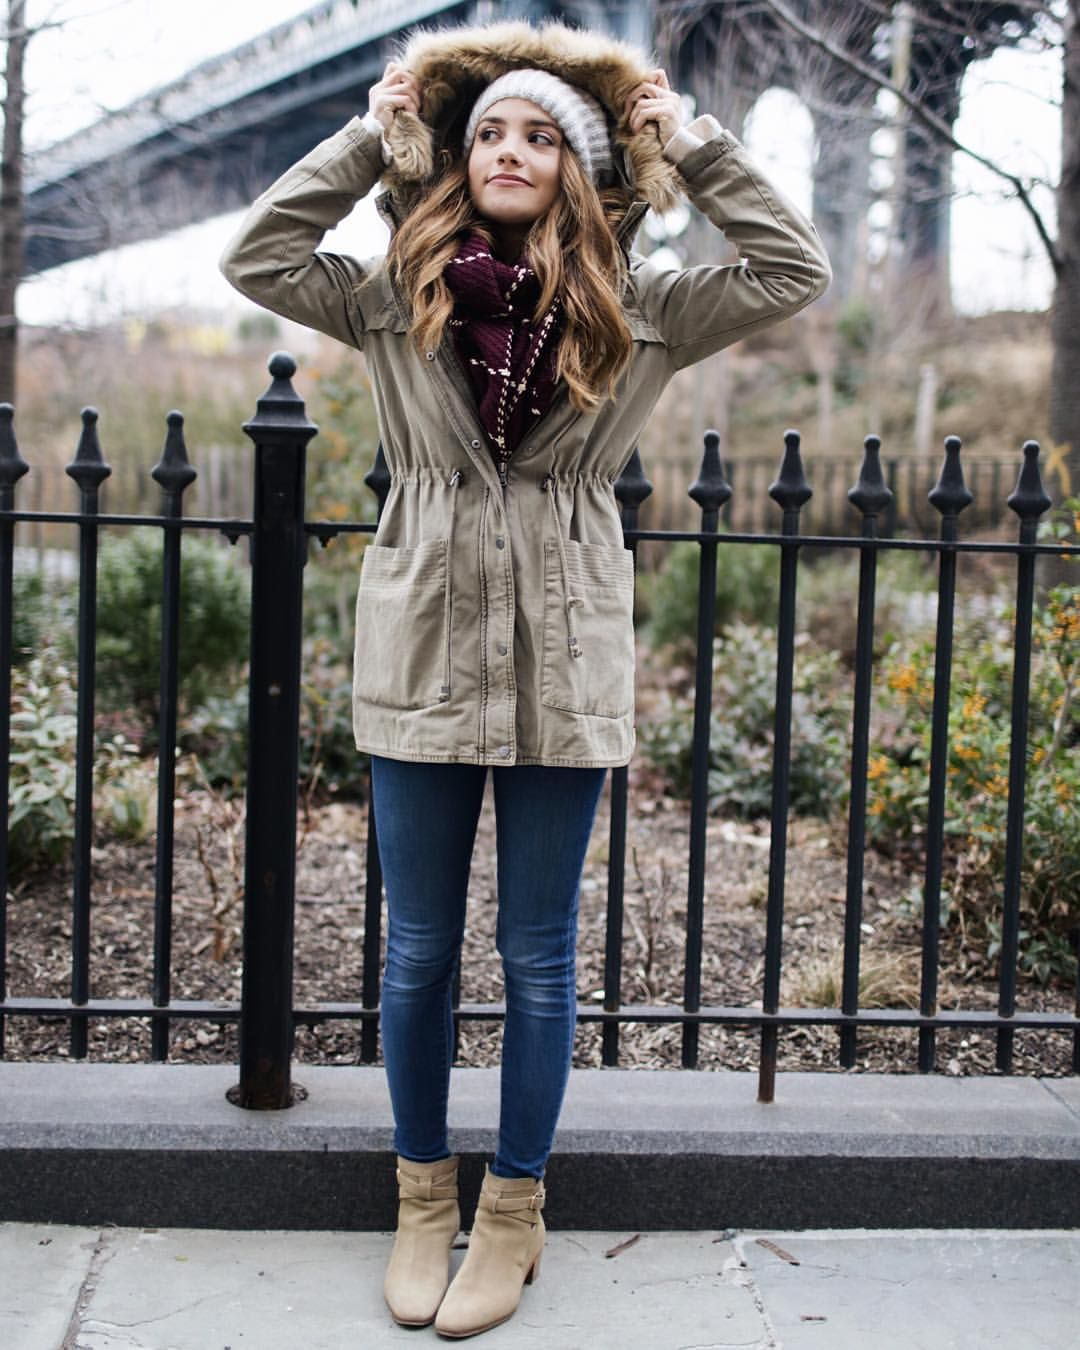 899bcae009a Tess Christine sur Instagram : Bundled up. It's cold and even ...